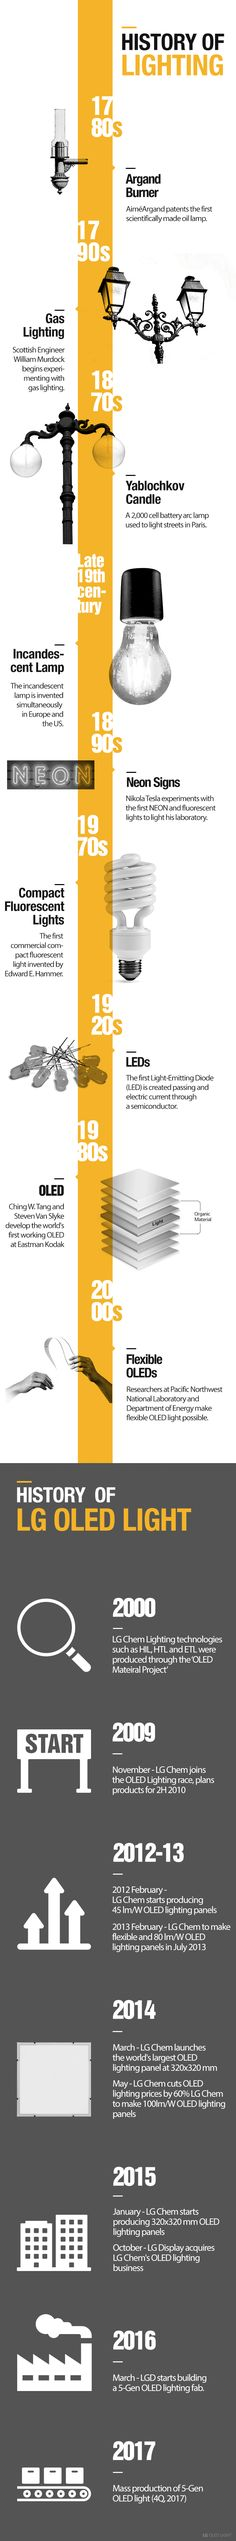 The brief history of lighting and LG OLED light. For more information, please contact us by visiting http://www.lgoledlight.com #LG #display #OLED #light #history #infographic